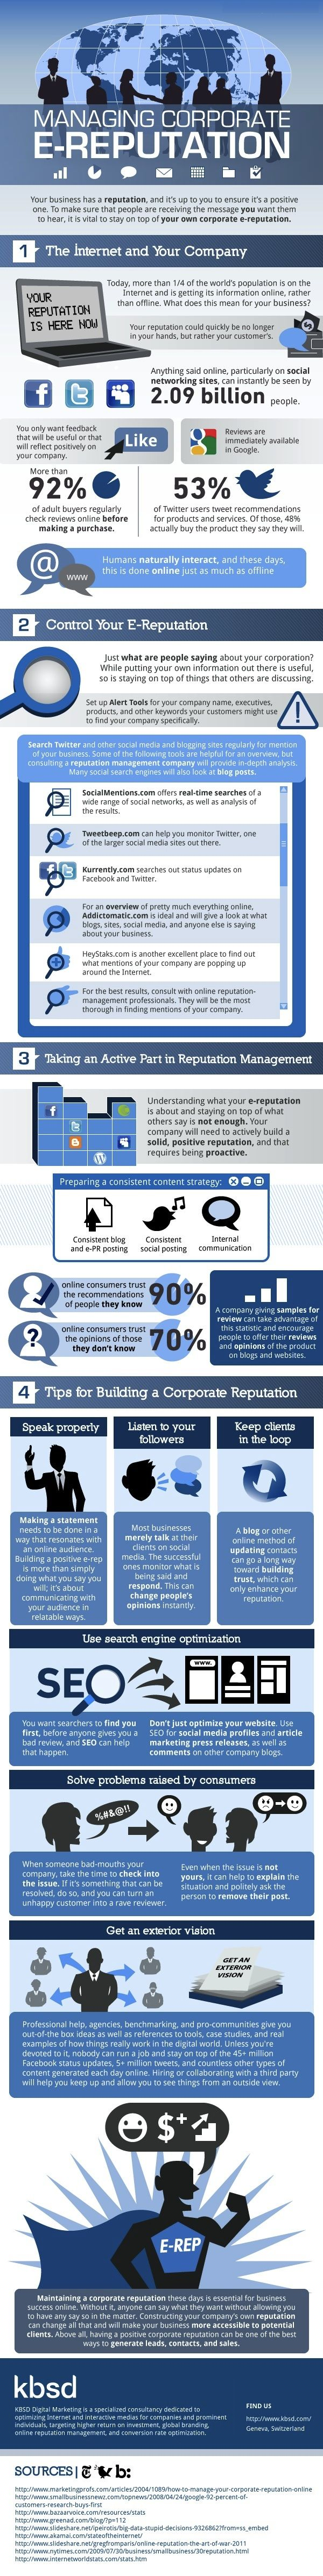 Managing Corporate E-Reputation  http://www.mediabistro.com/alltwitter/manage-online-reputation_b17683